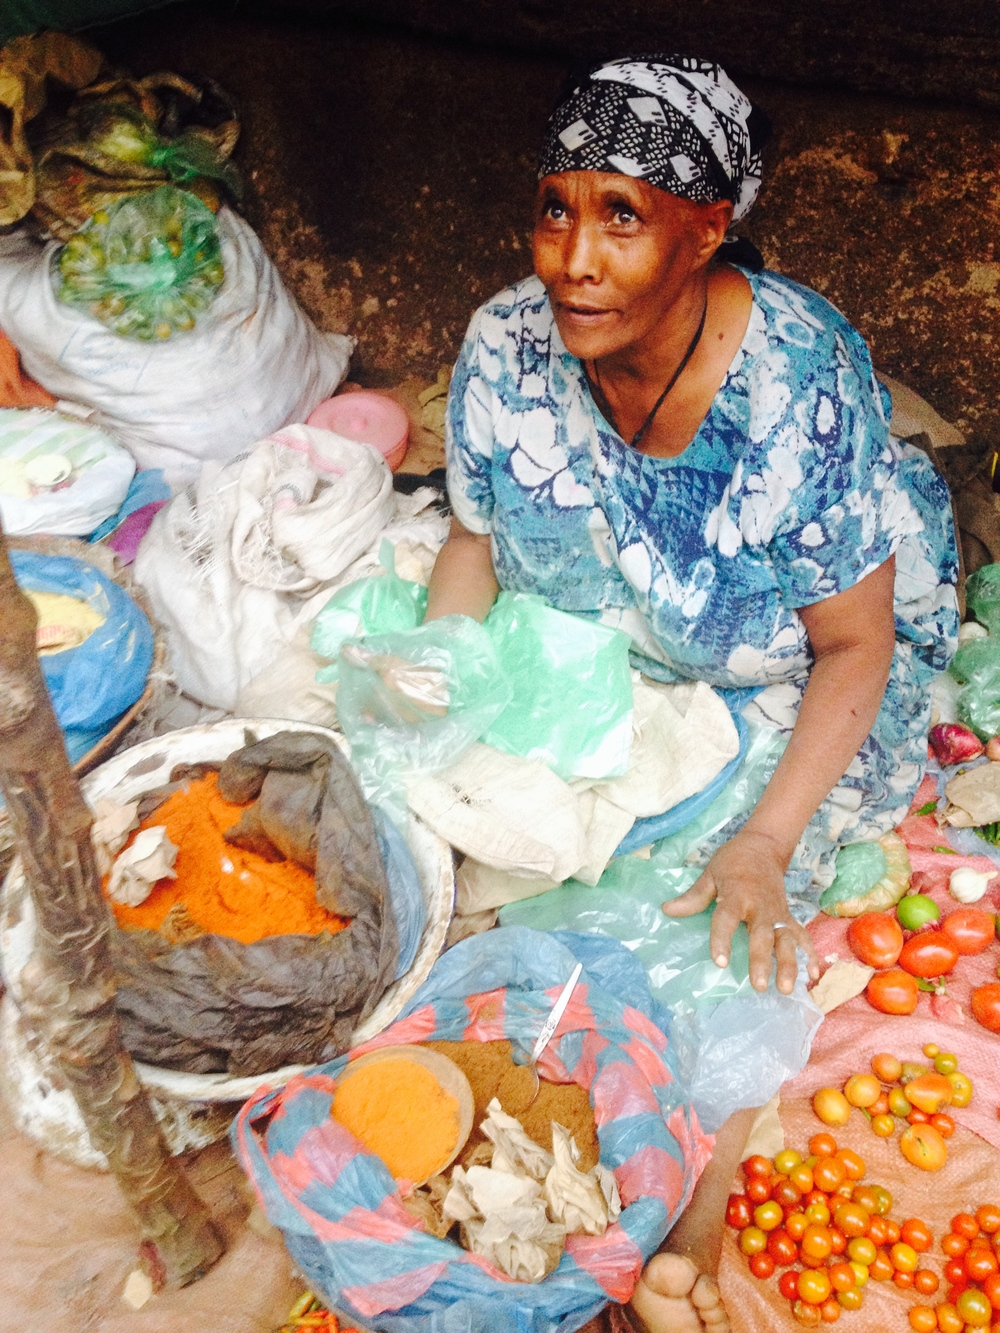 Sweet Spice Lady at the Harar Market